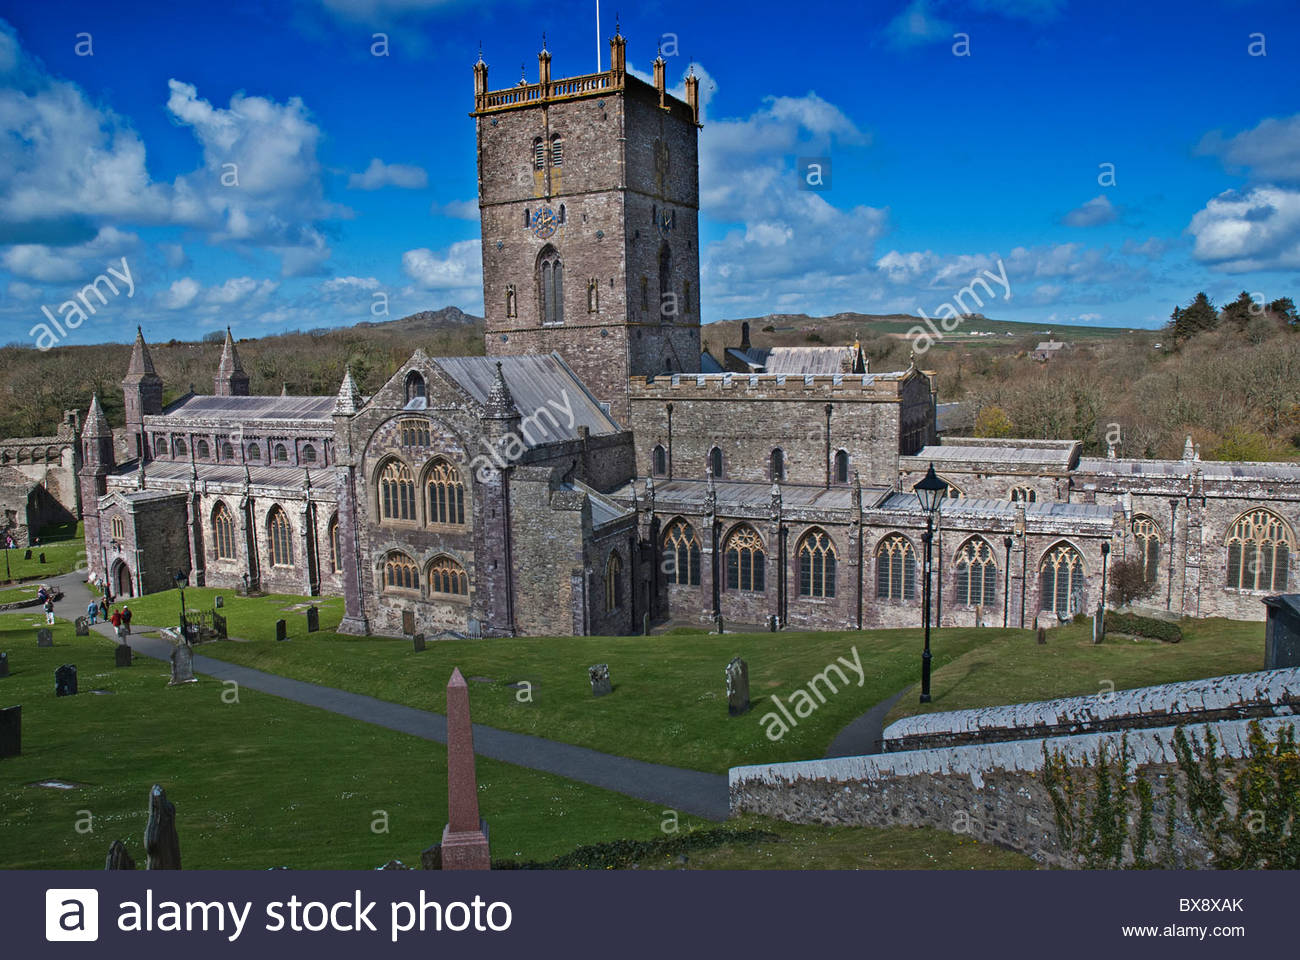 St Davids Head St Davids (Tyddewi), Tyddewi Stock Photos & Tyddewi Stock Images - Alamy